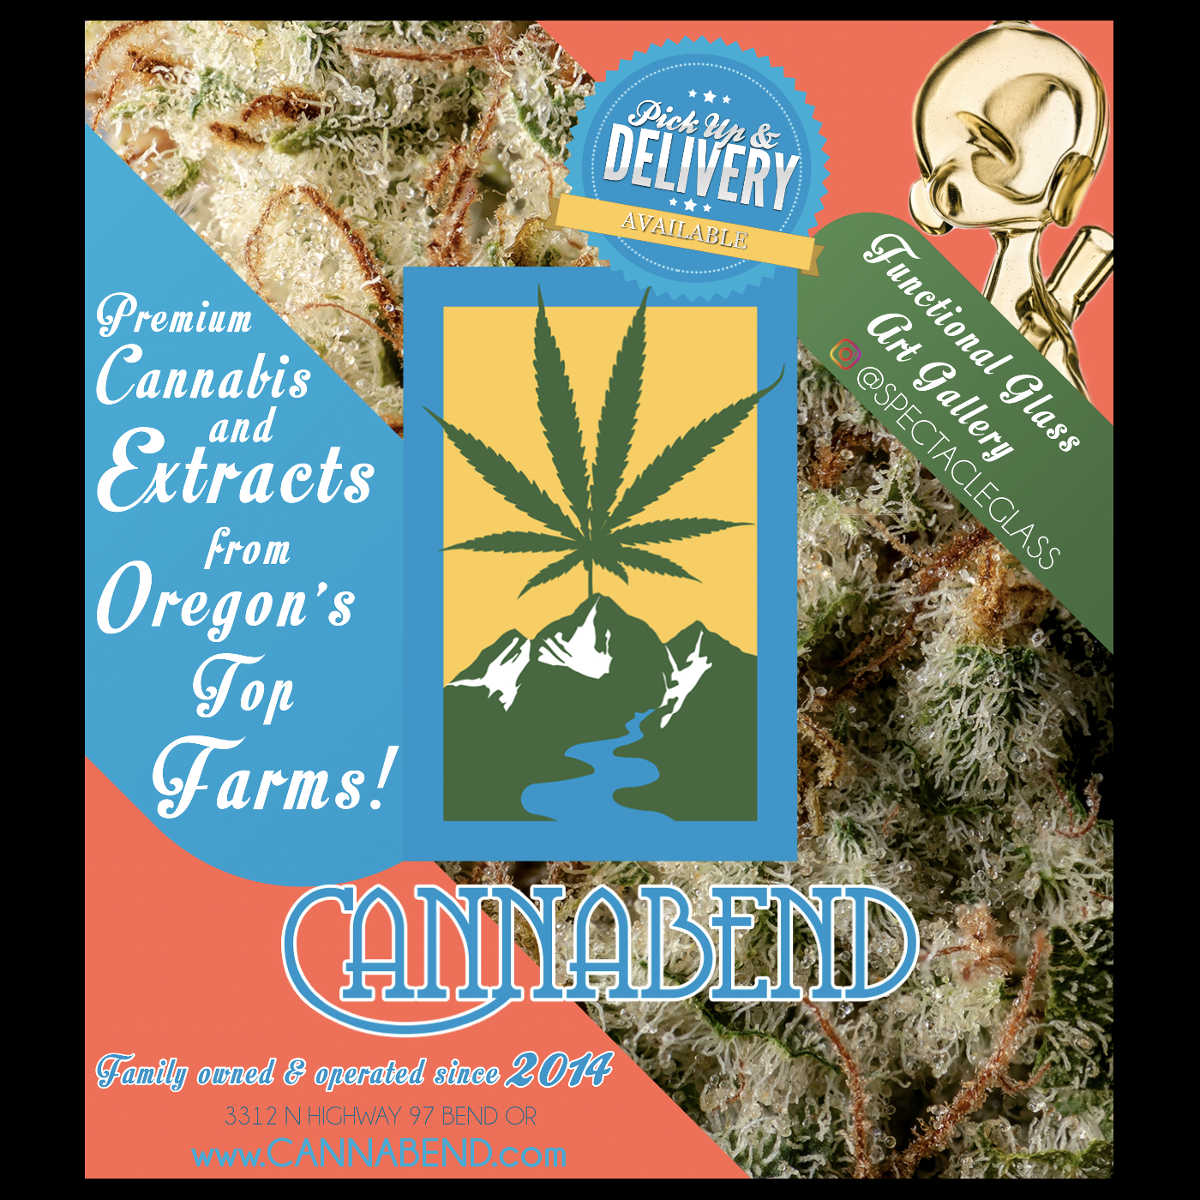 Cannabend | Central Oregon's Premier Medical and